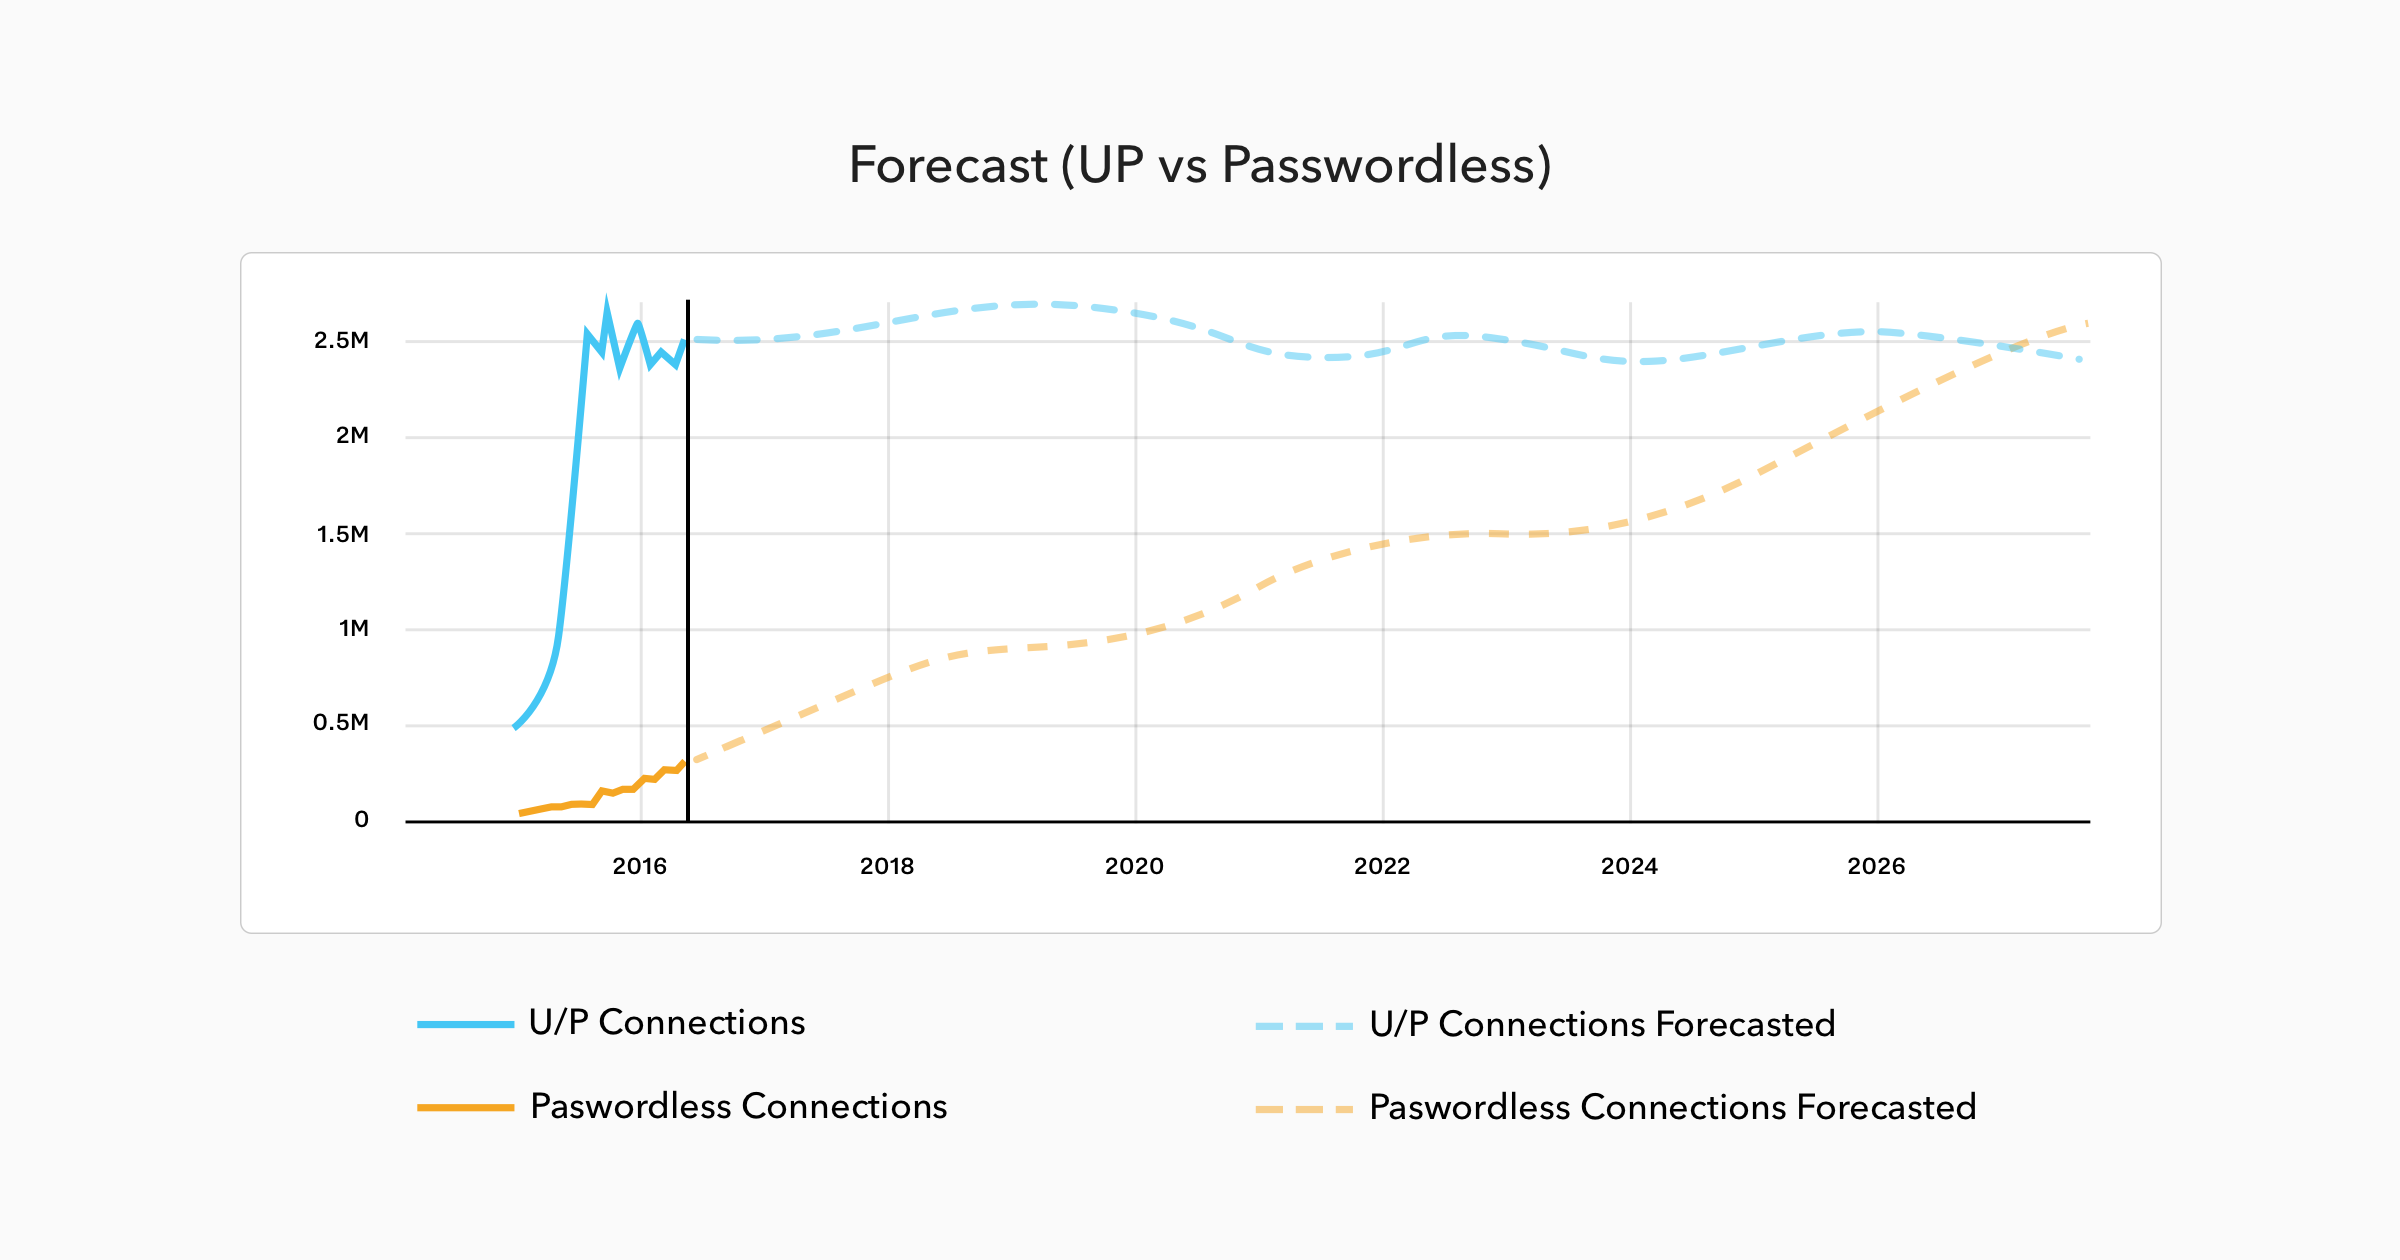 Forecast username & password vs Passwordless